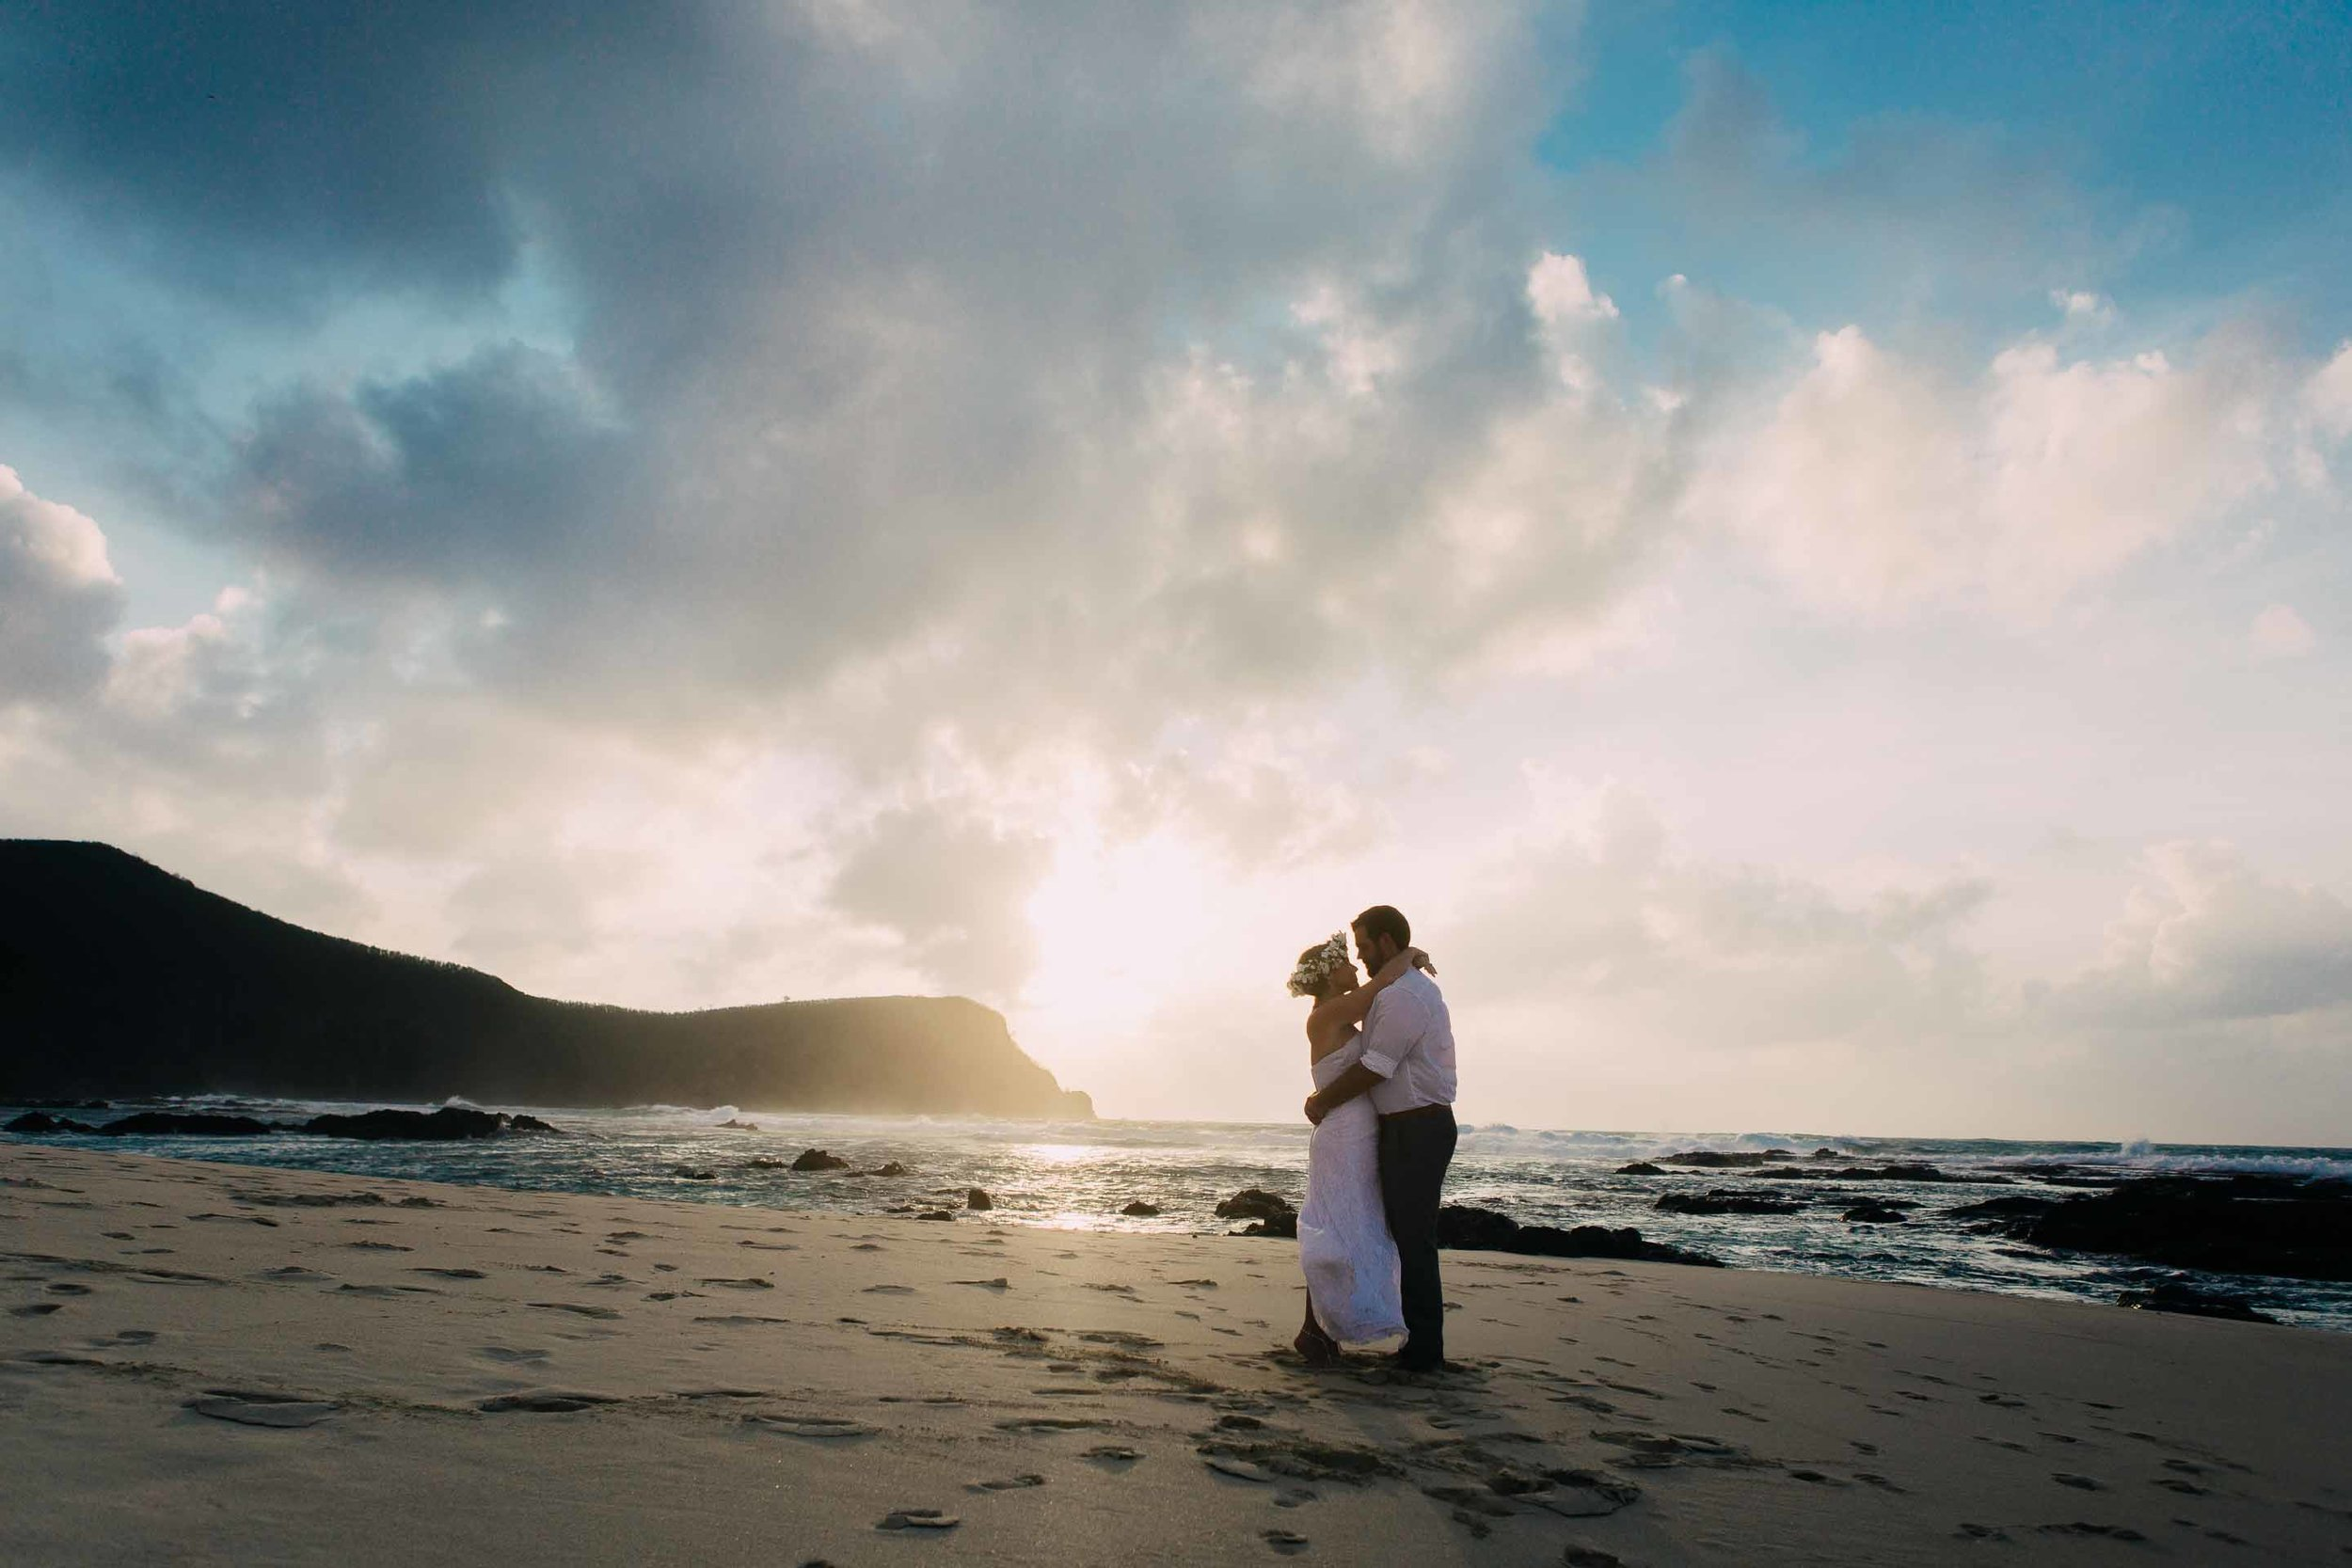 the couple on the beach with sunset behind them